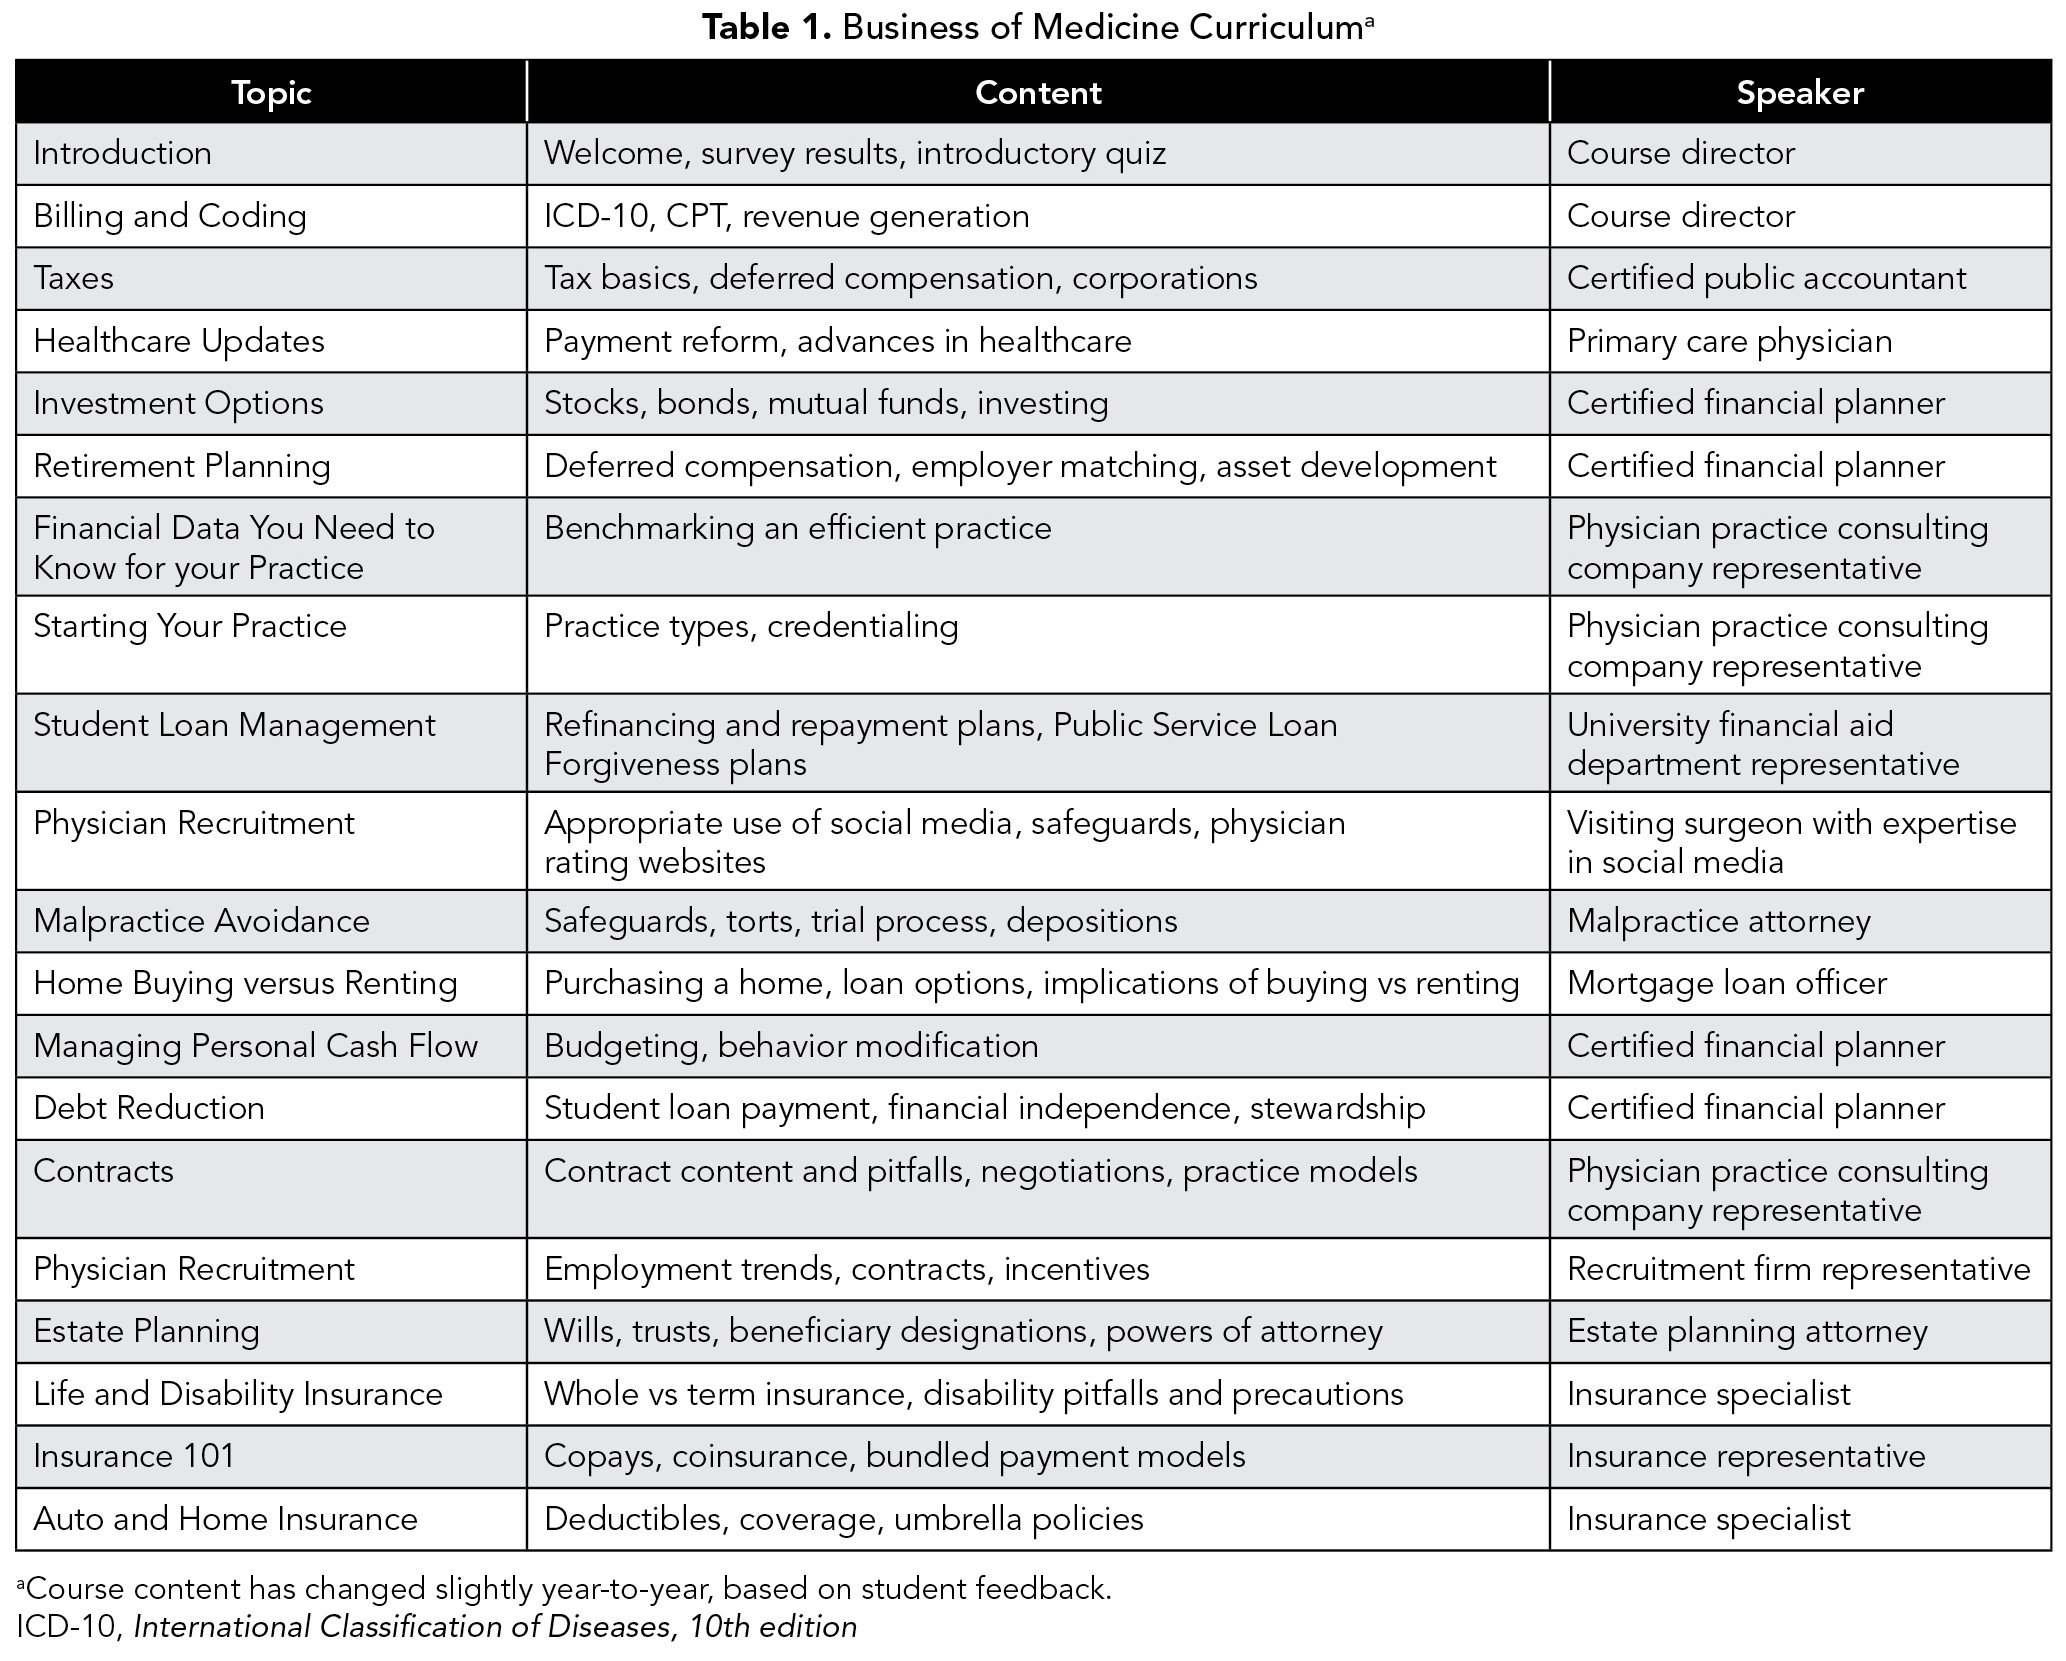 TABLE 1. Business of Medicine Curriculum